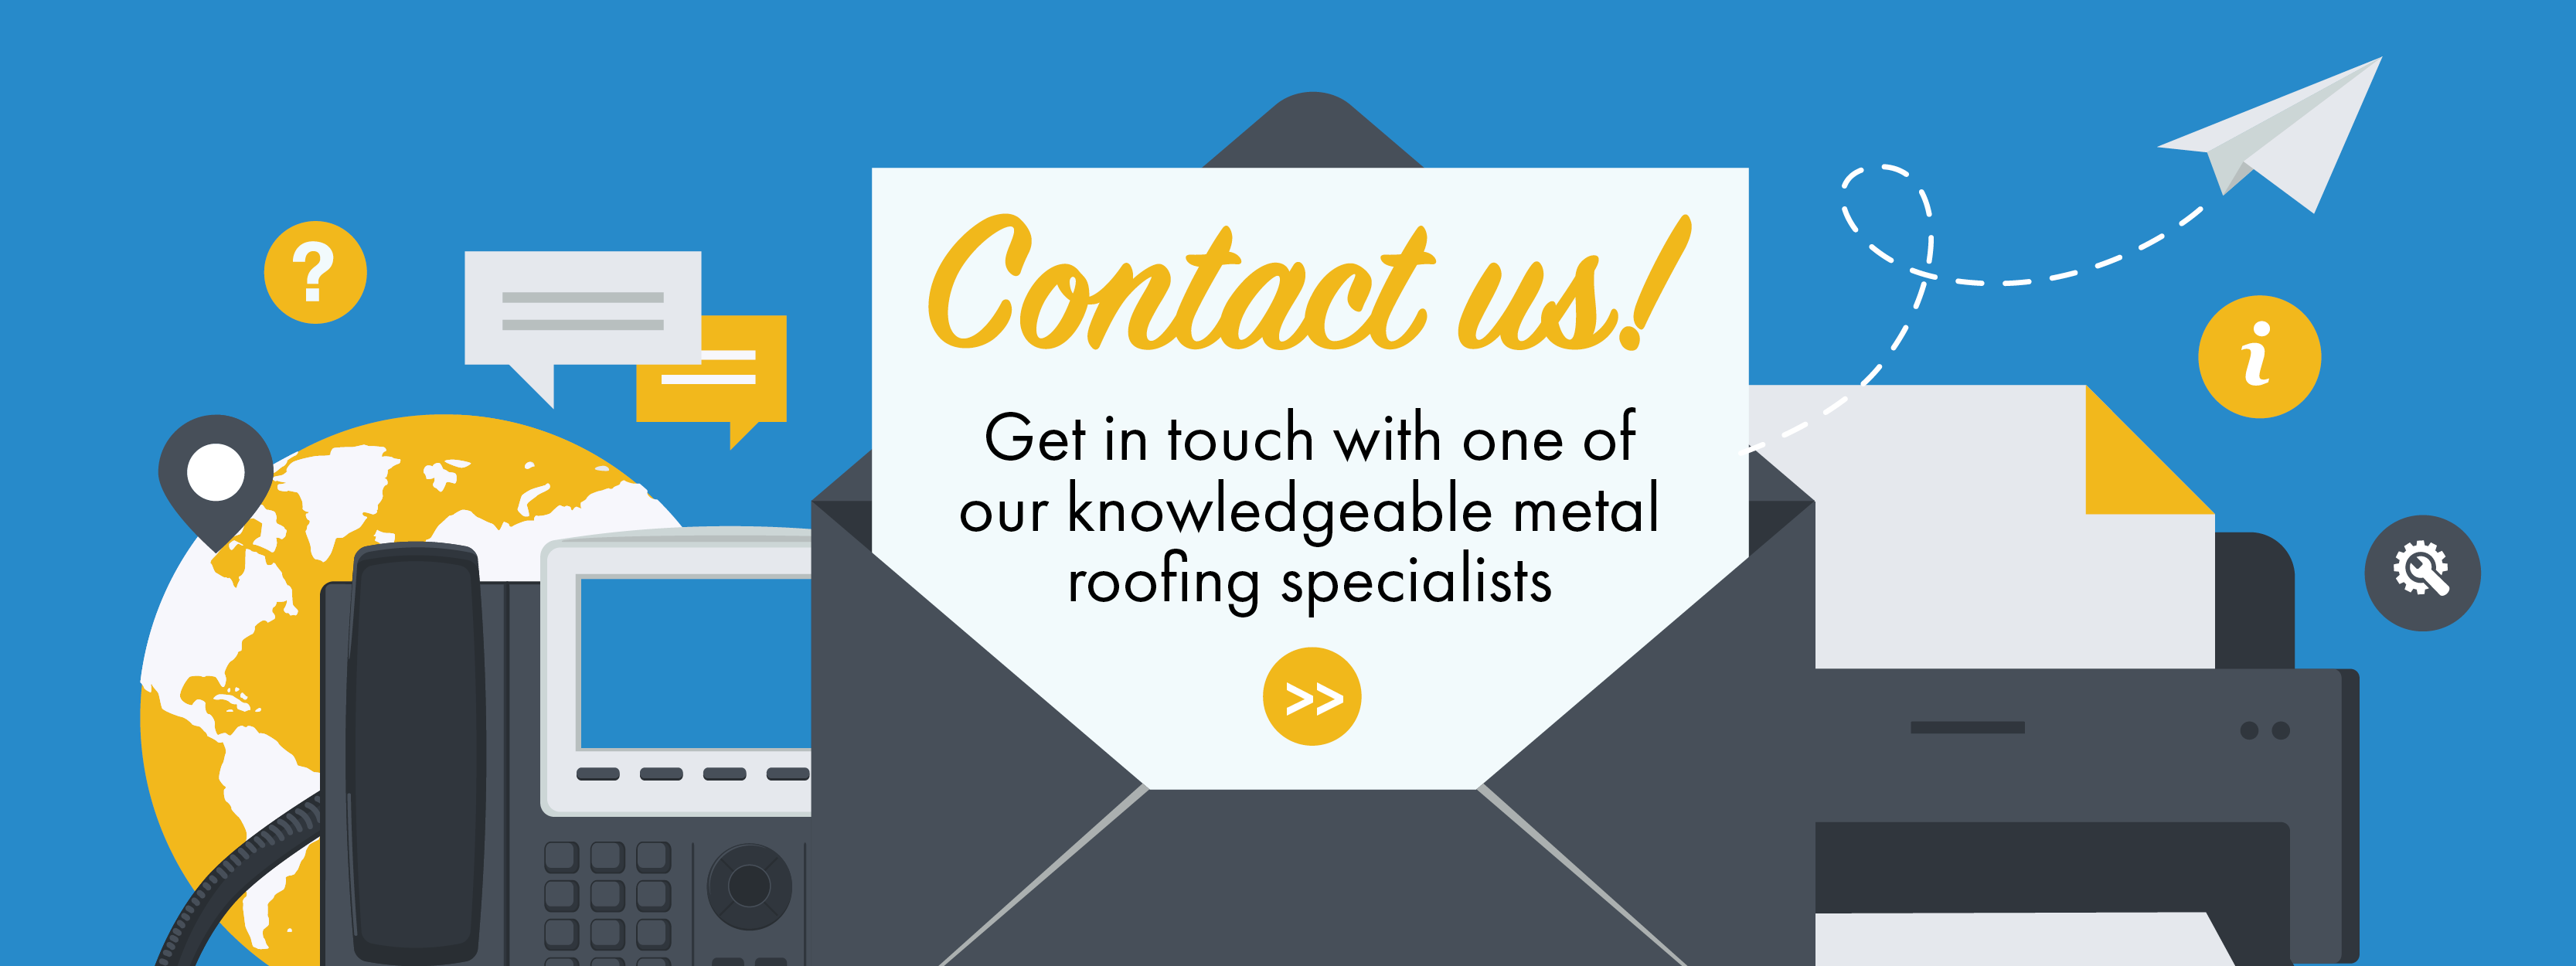 Contact Sheffield Metals today!